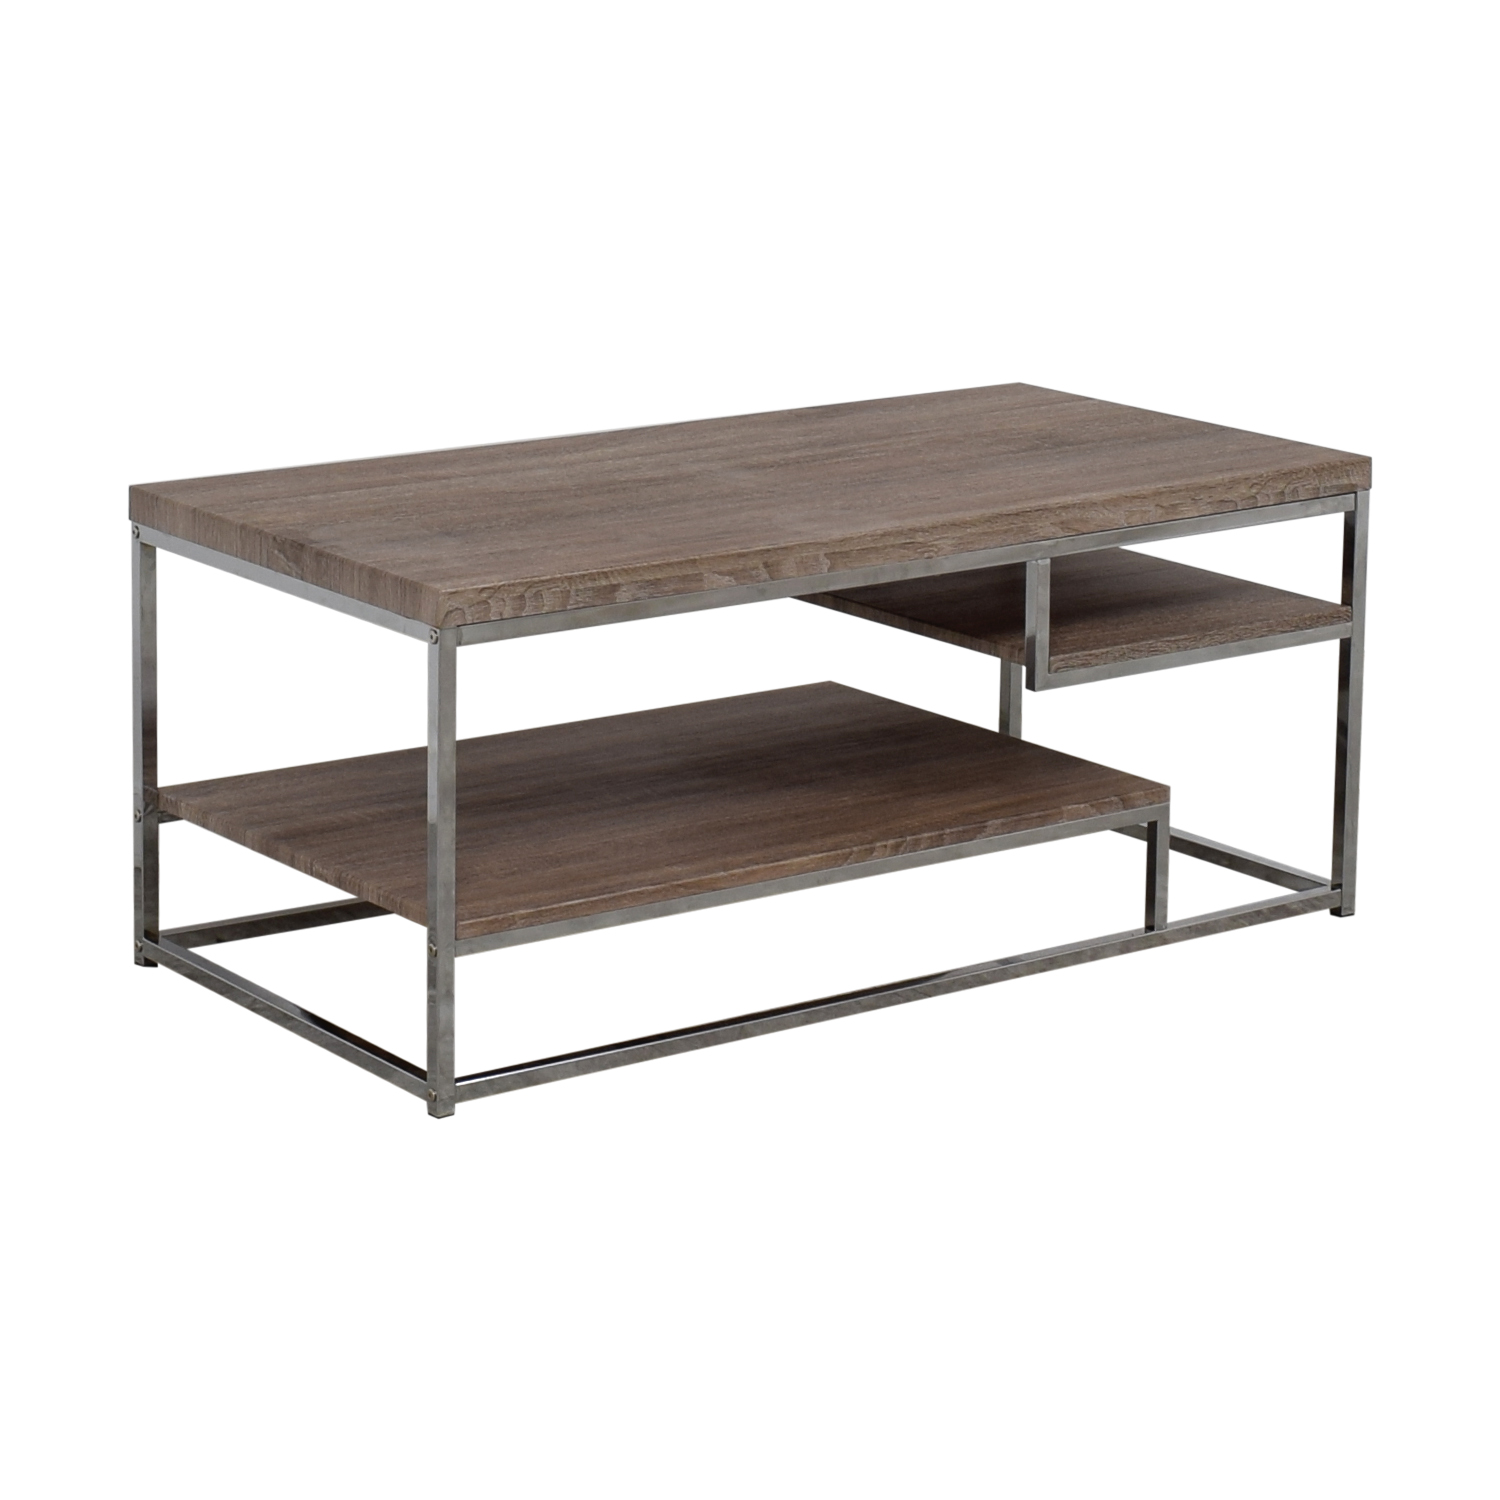 OFF Rustic Wood And Chrome Coffee Table Or Media Unit Tables - Reclaimed wood and chrome coffee table